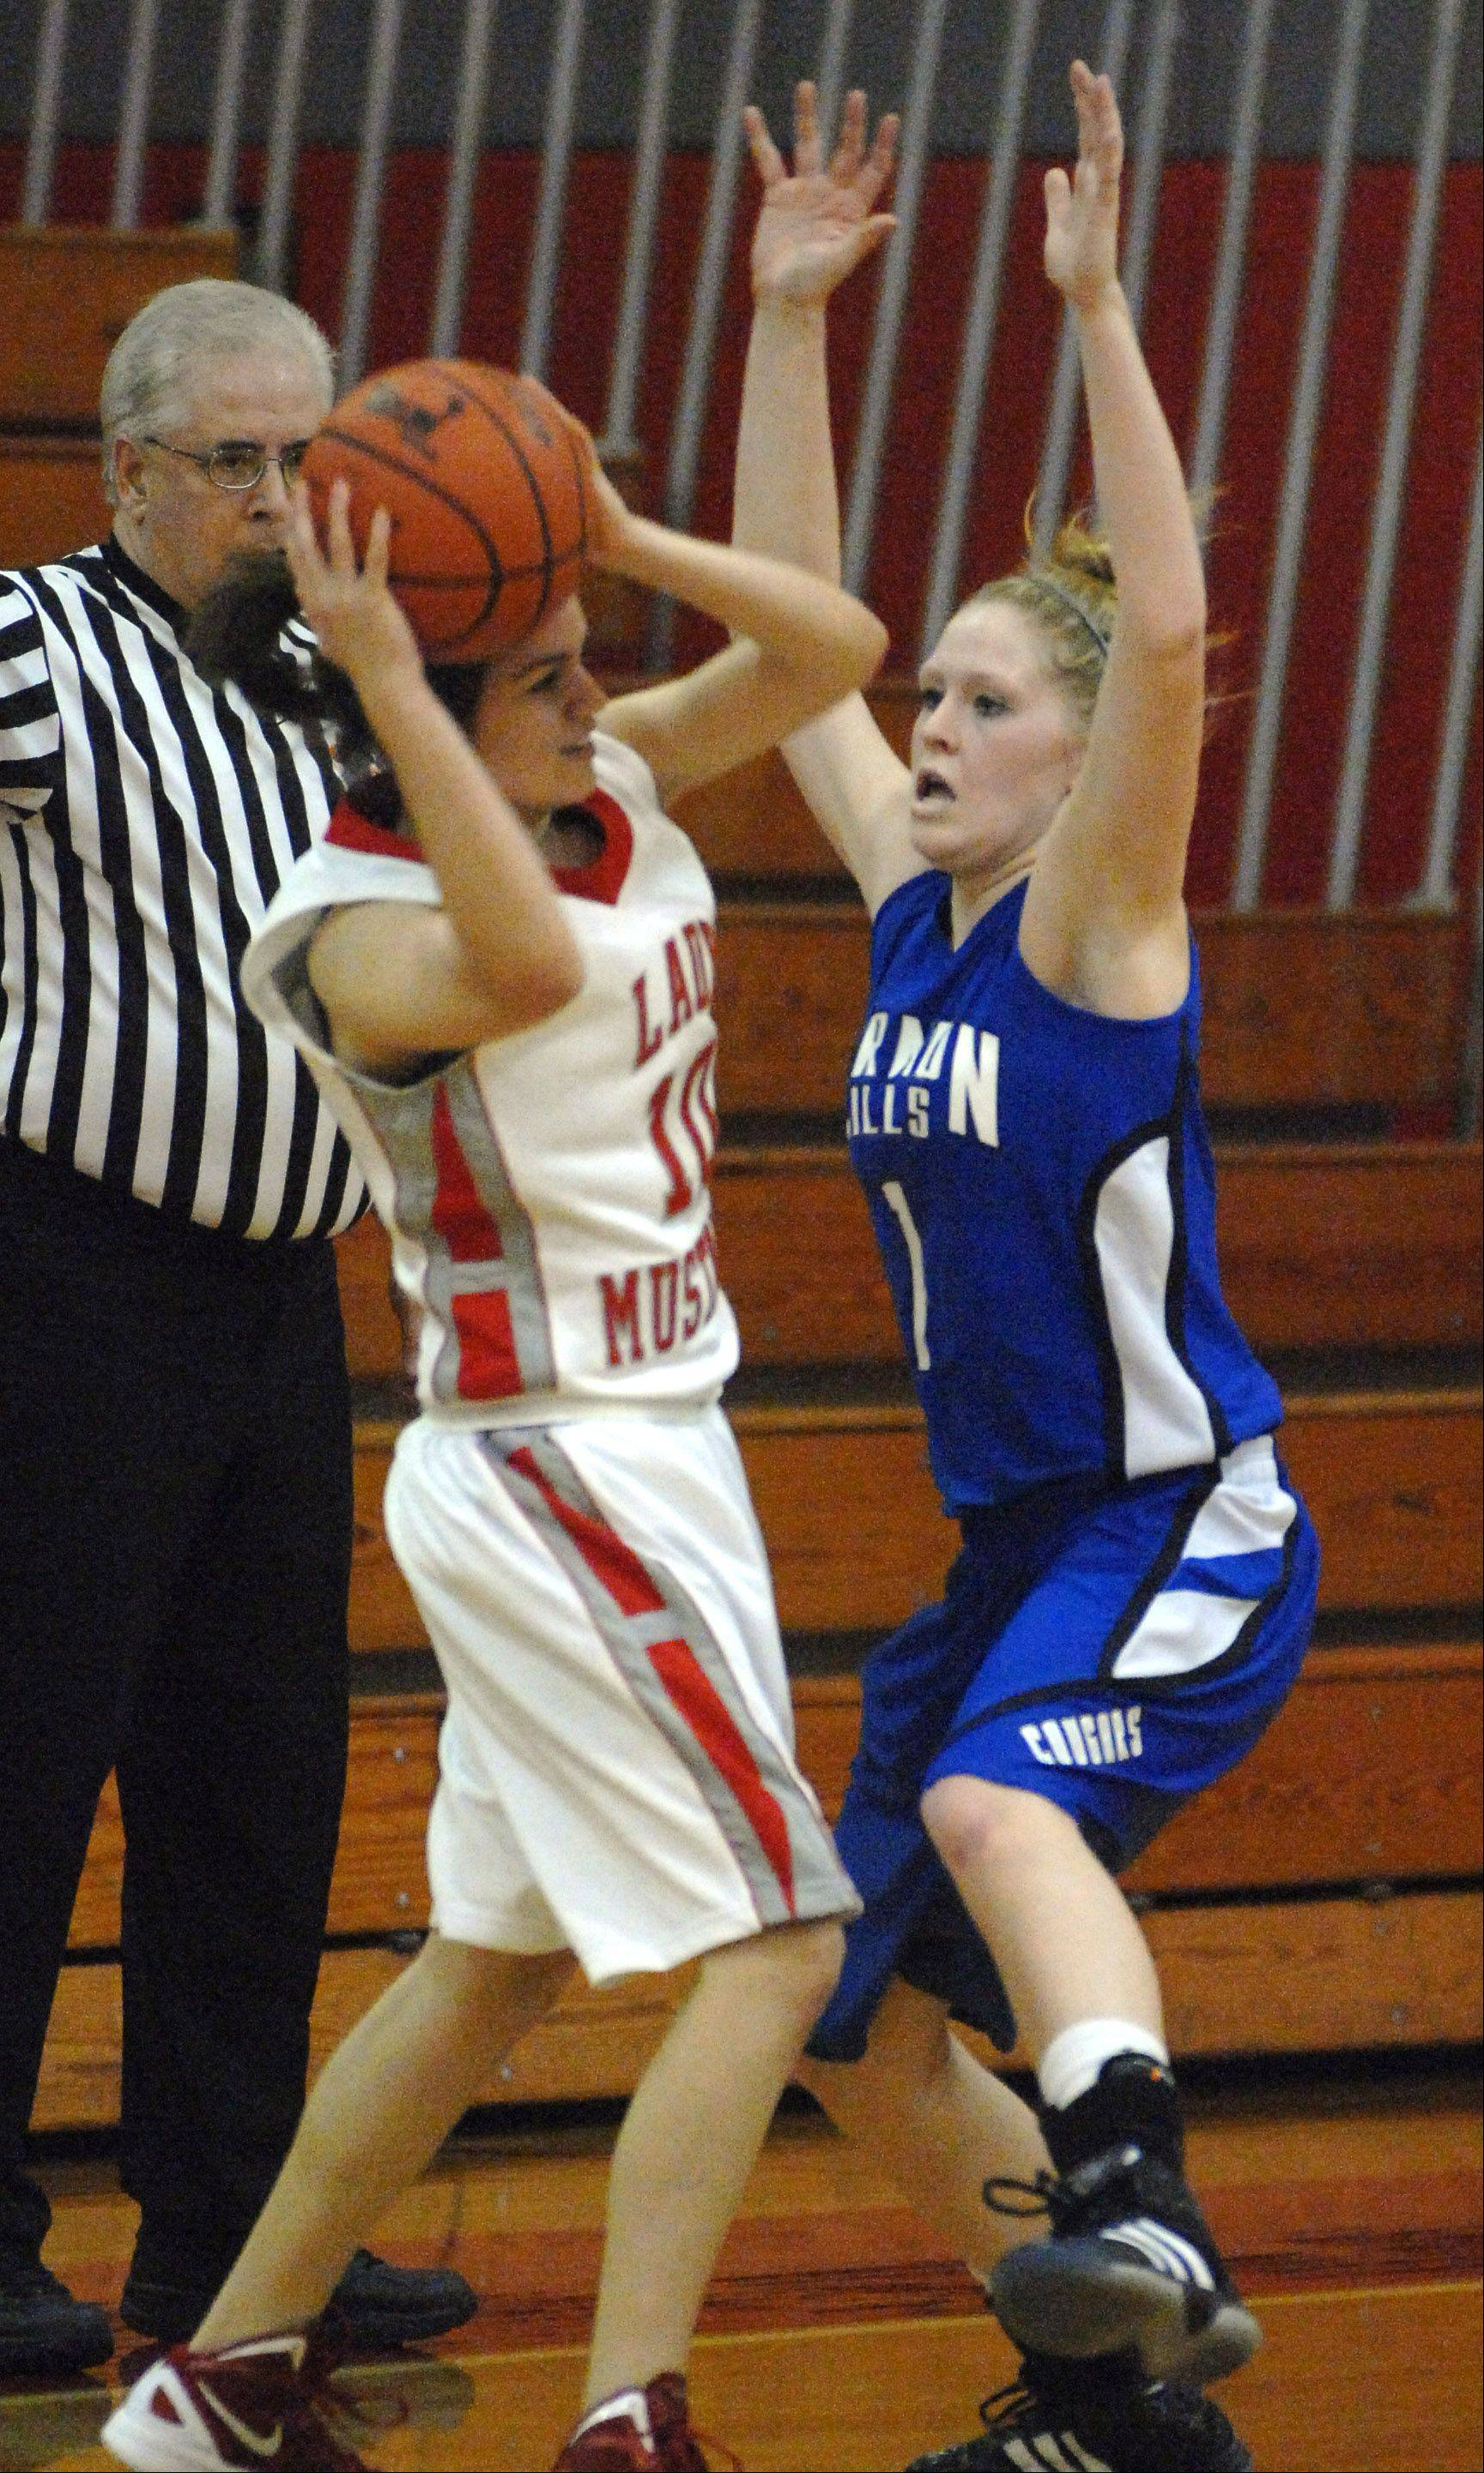 Vernon Hills' Sydney Smith, 1, pressures Mundelein's Kiana Suhling during Thursday's 2011 Lady Mustangs Holiday Classic basketball game at Mundelein High School.